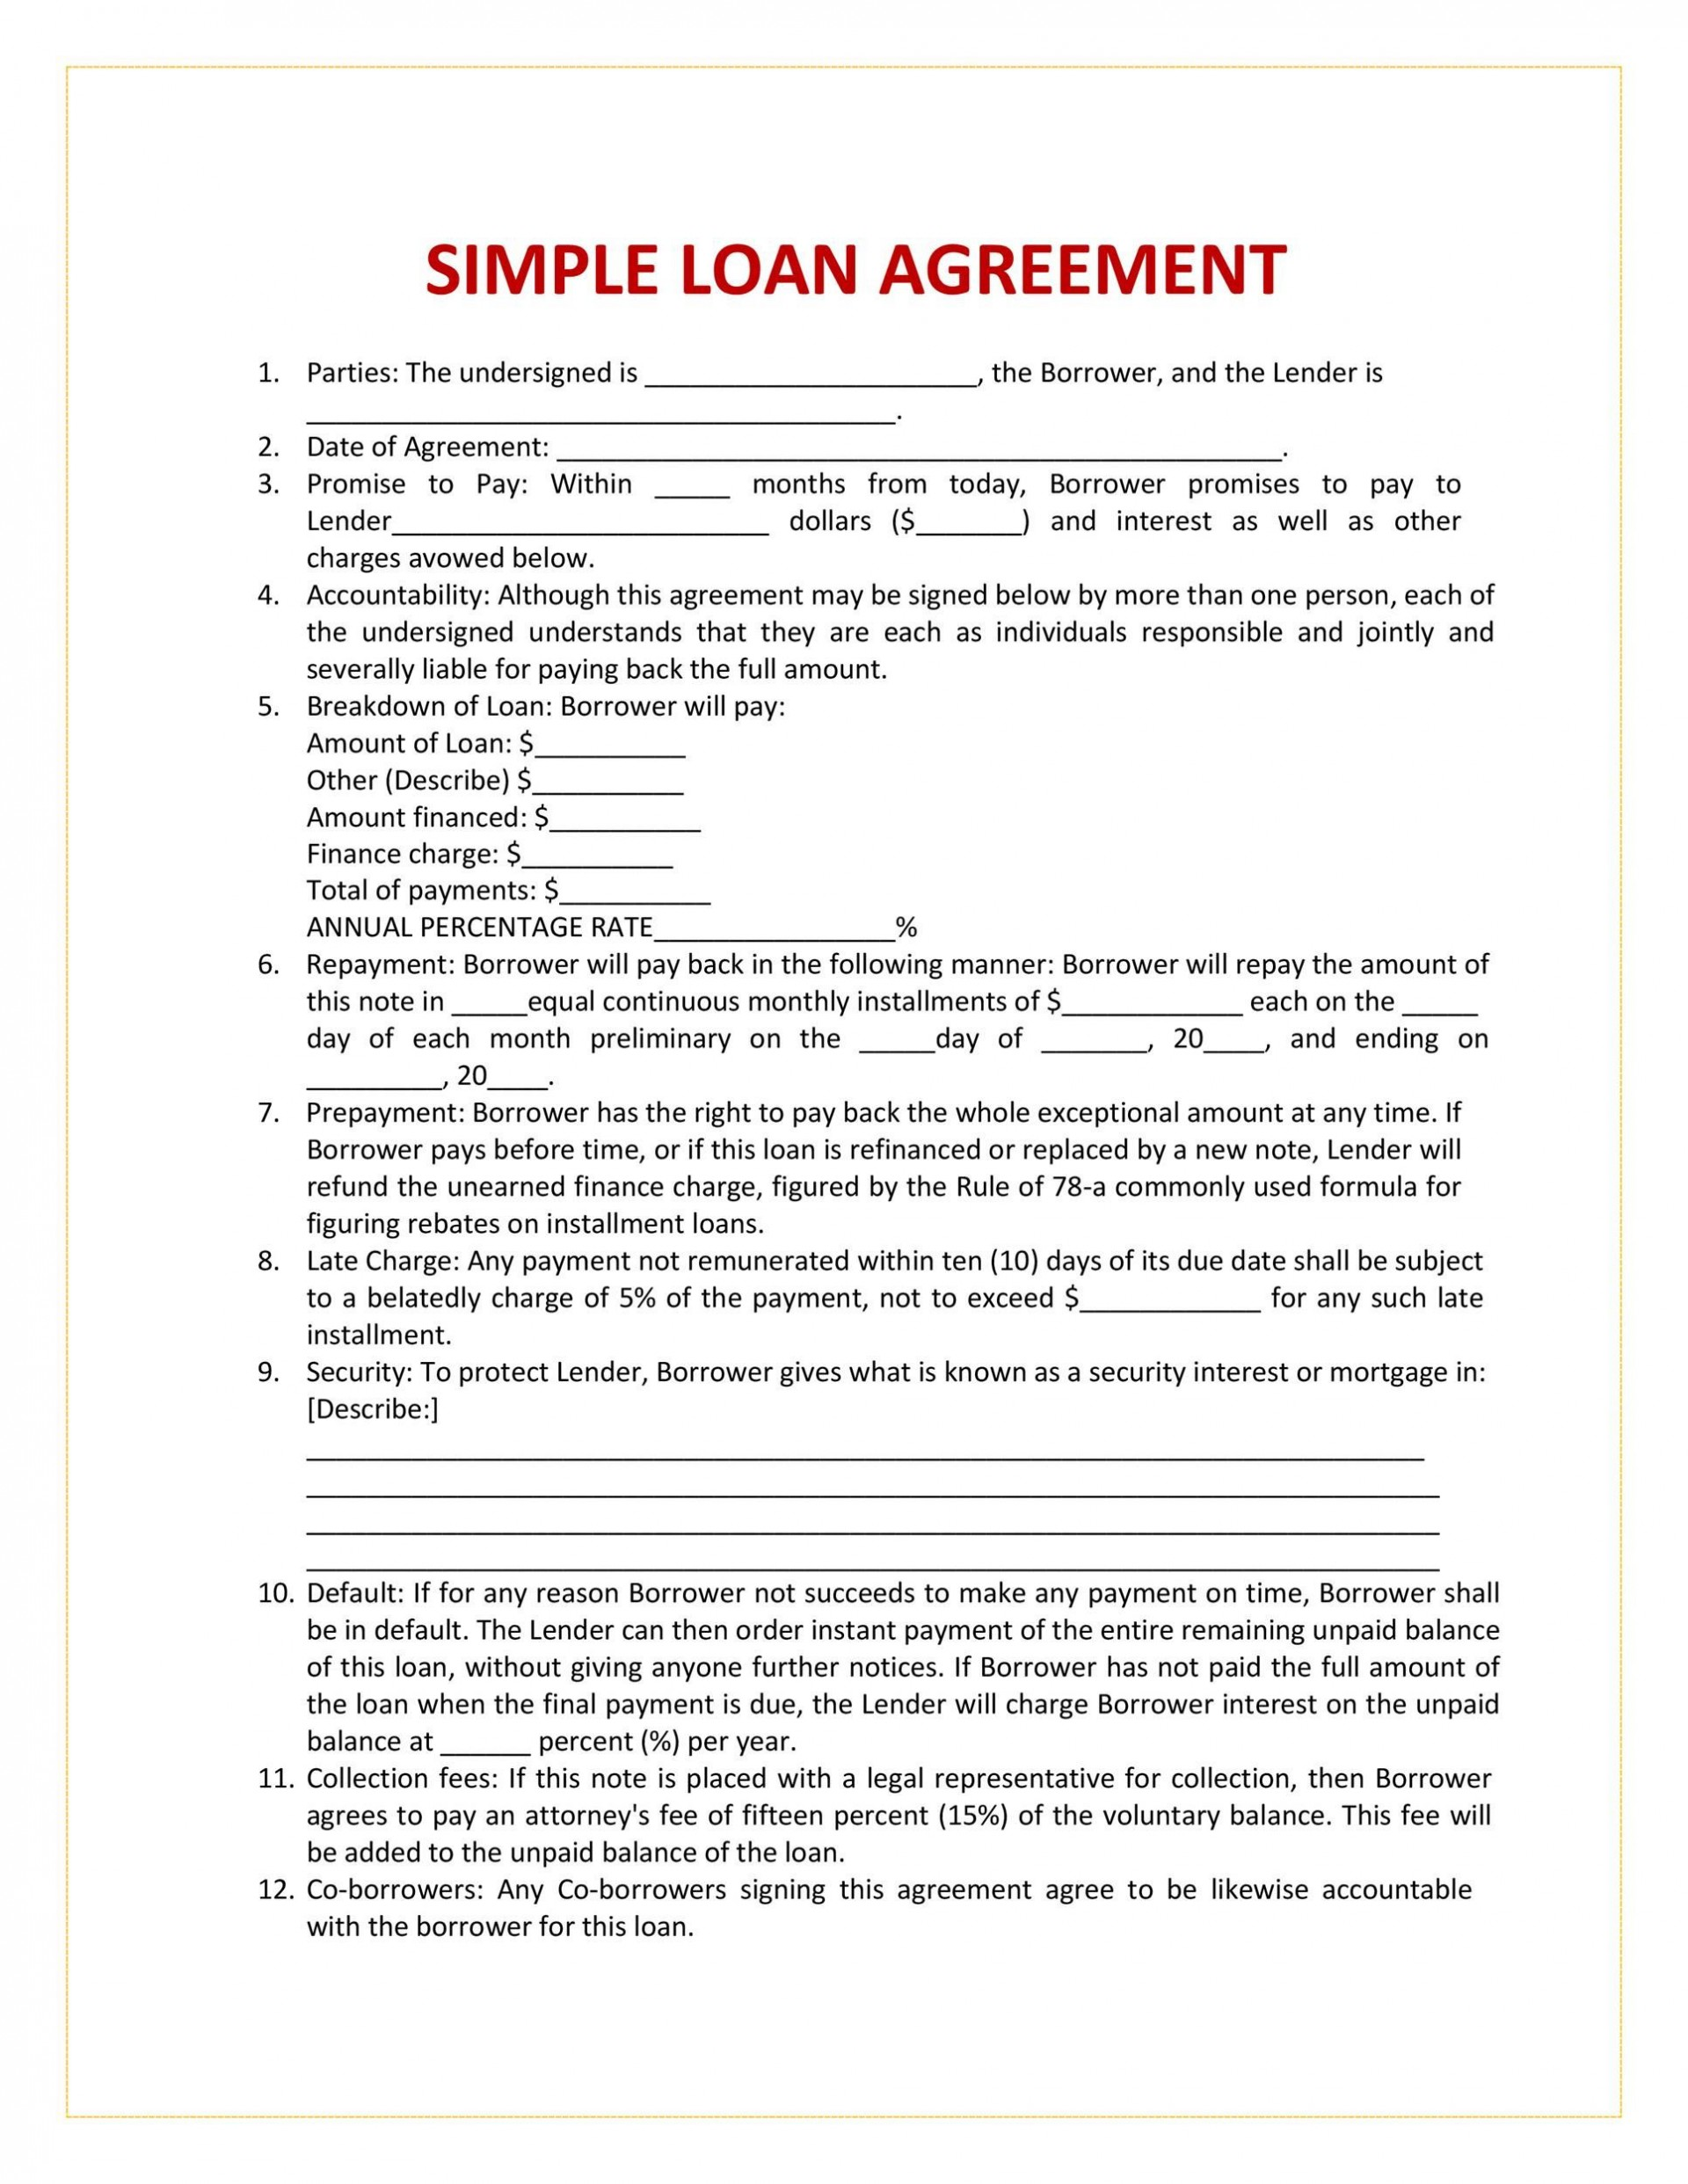 008 Remarkable Family Loan Agreement Template Free Uk Image  Simple1920